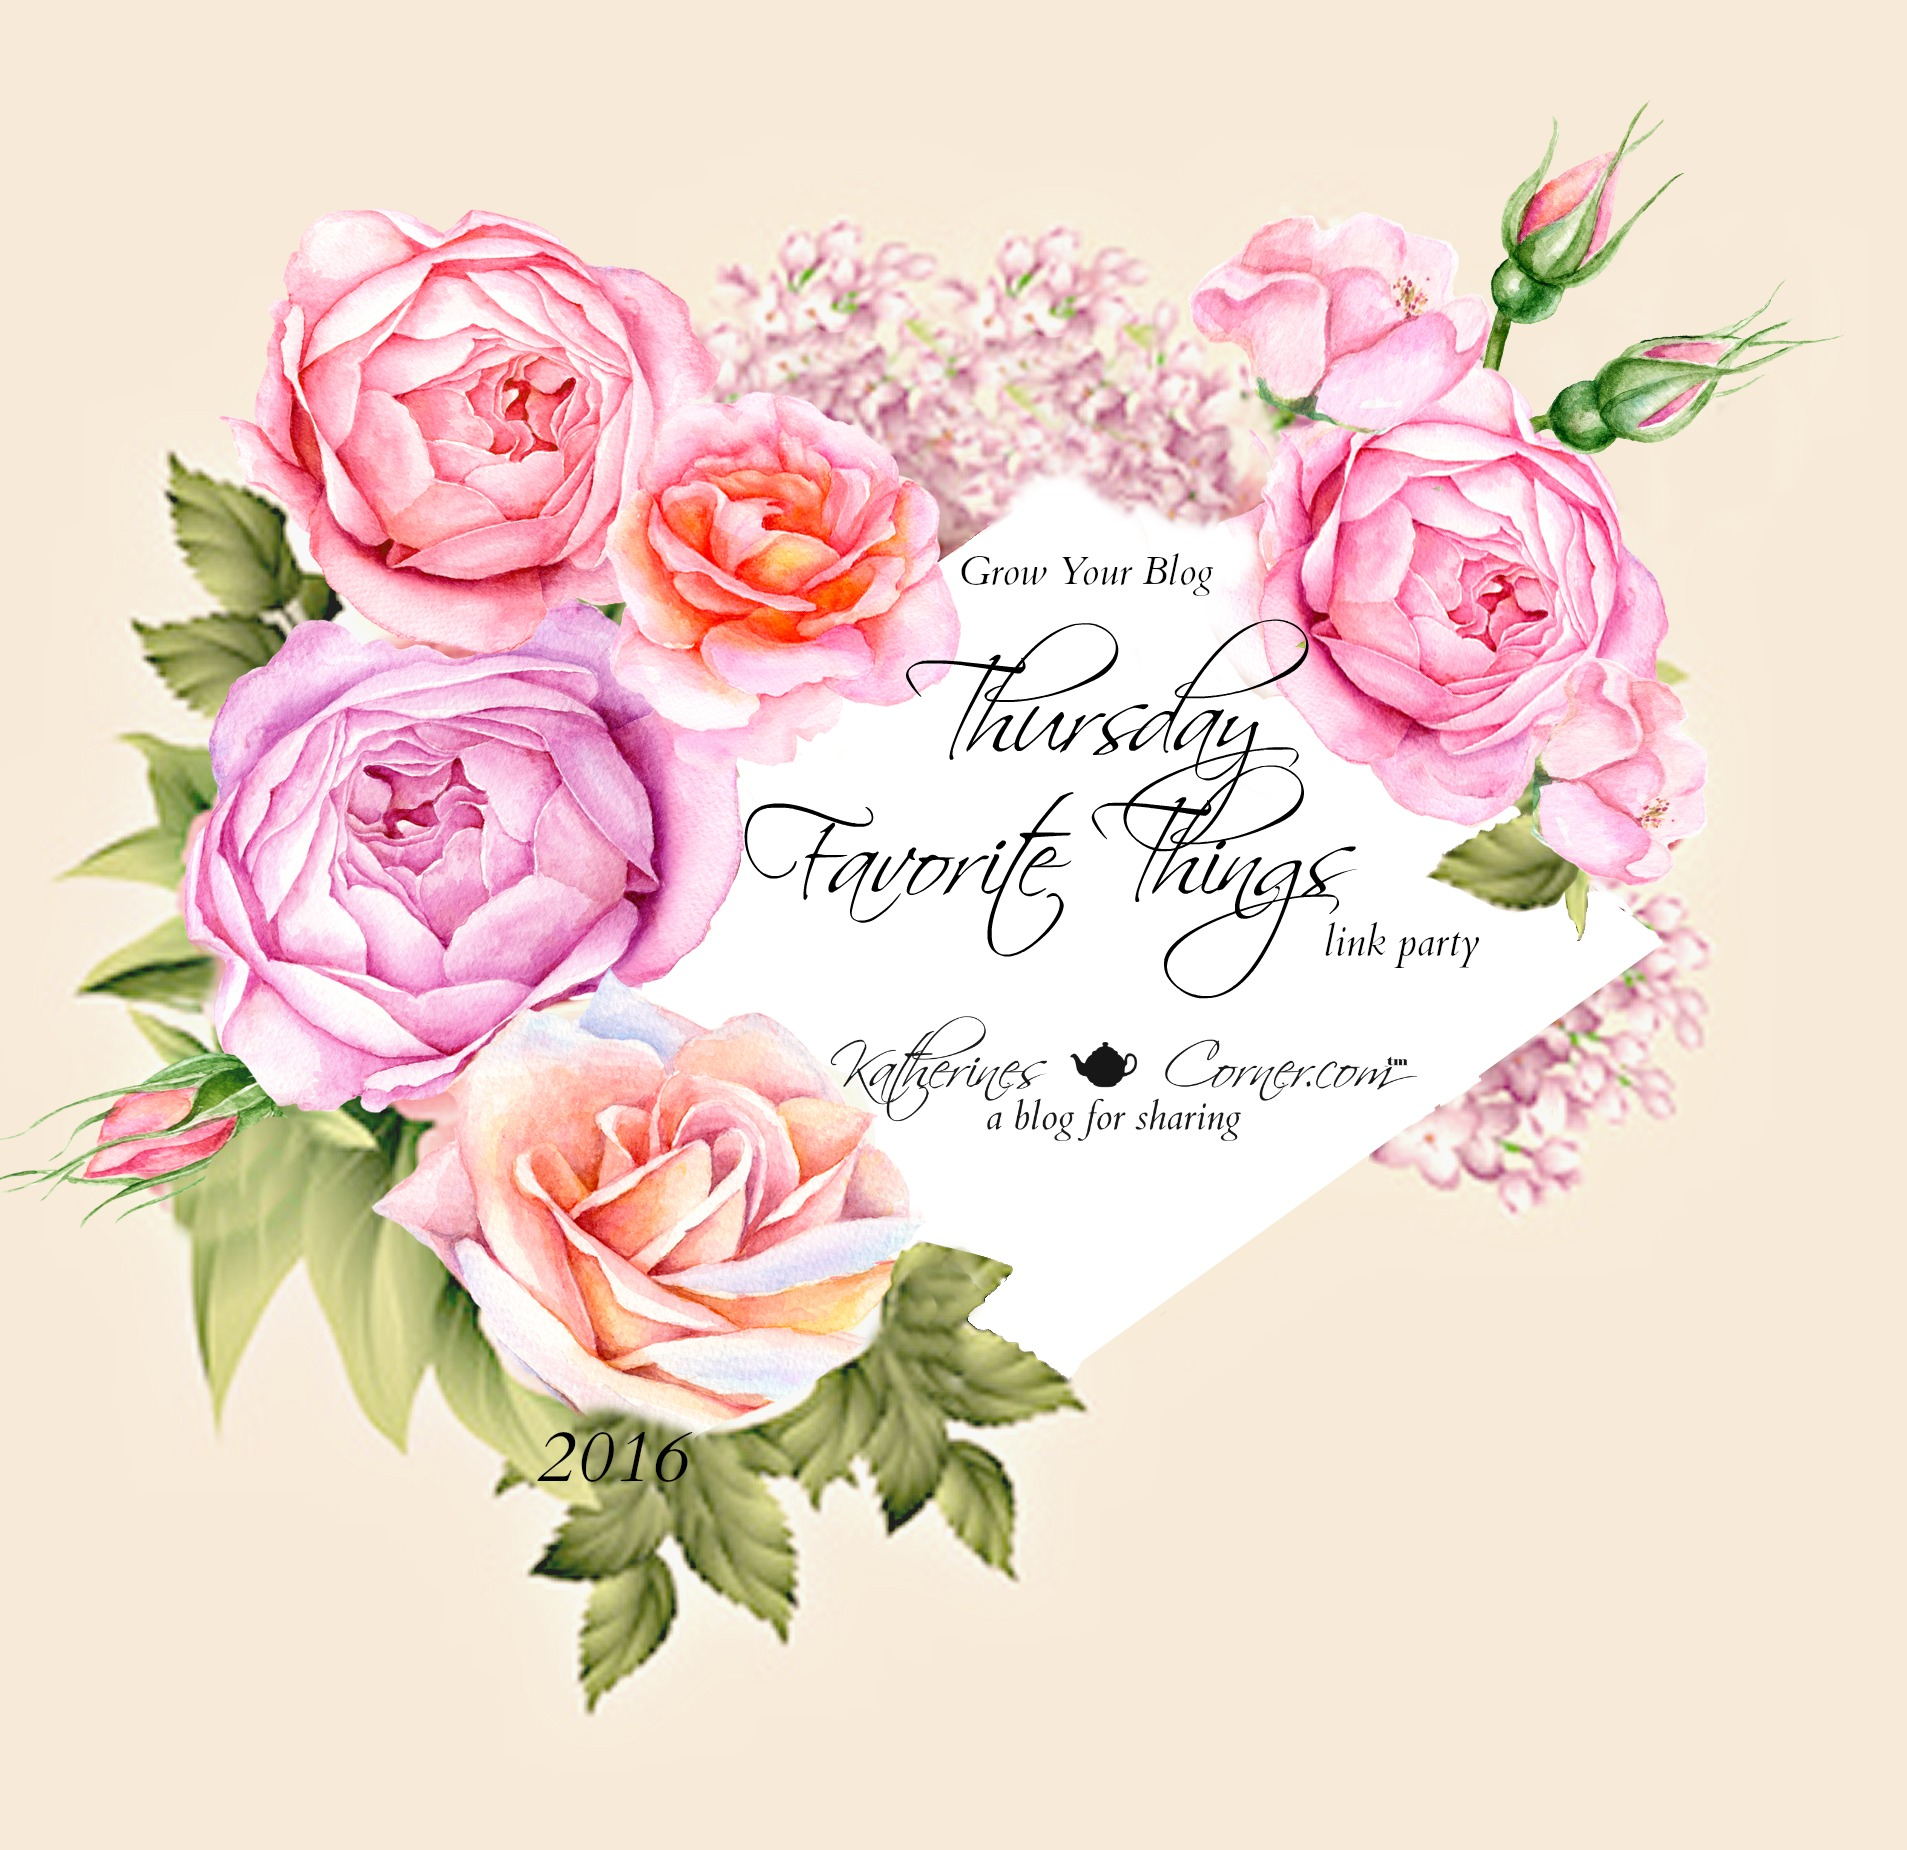 Thursday Favorite Things Link Party 242